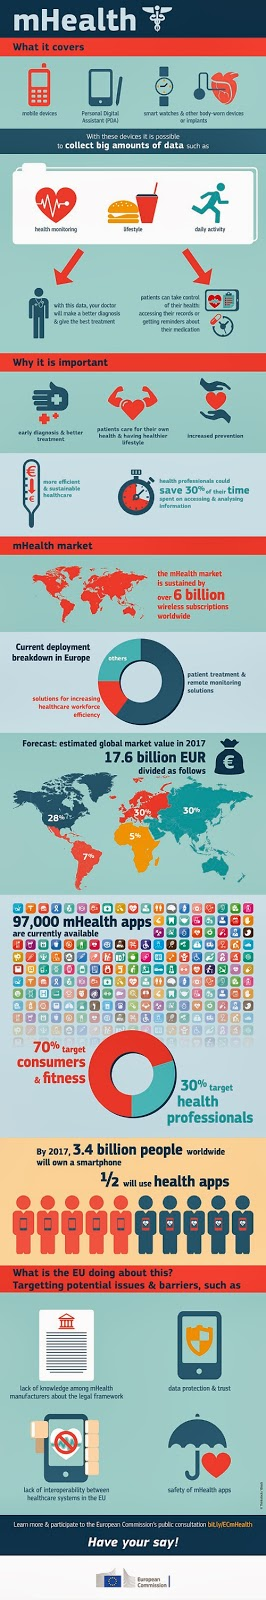 mhealth infographic